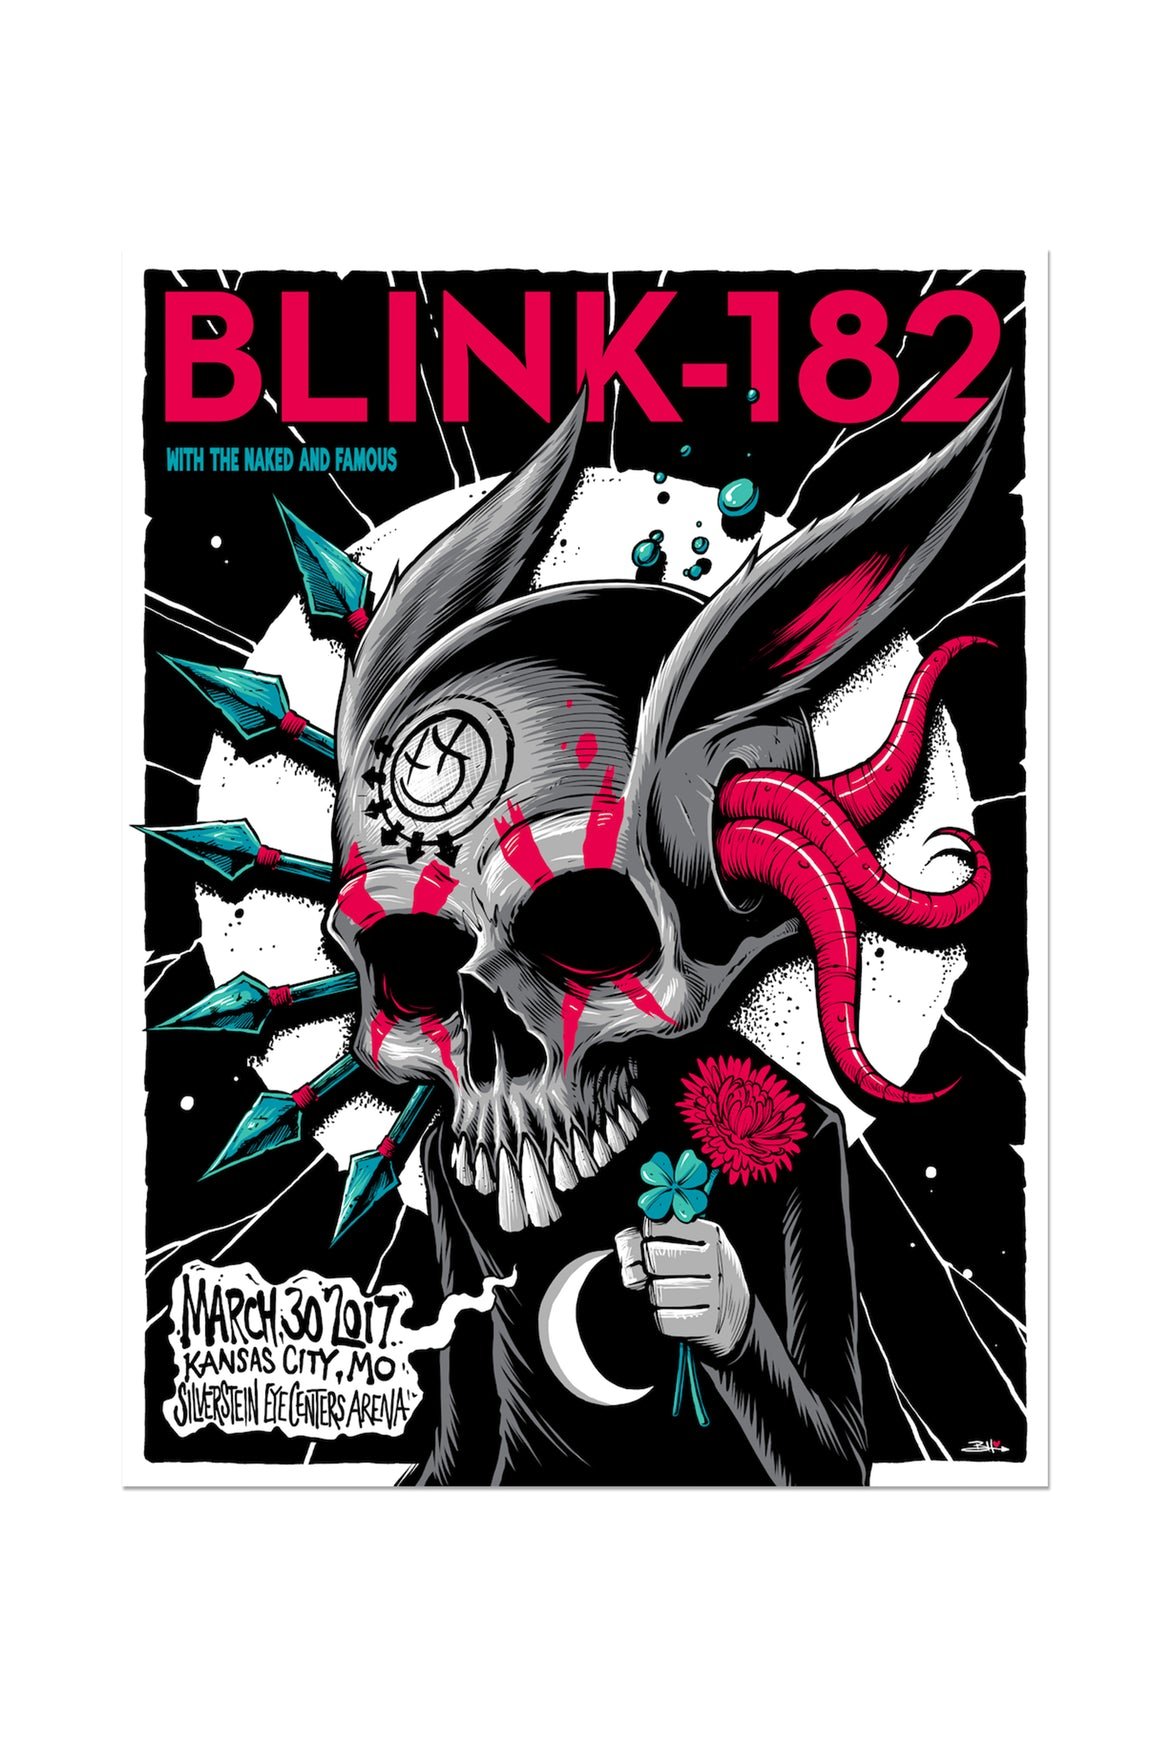 blink-182 3/30/2017 Kansas City, MO Event Poster